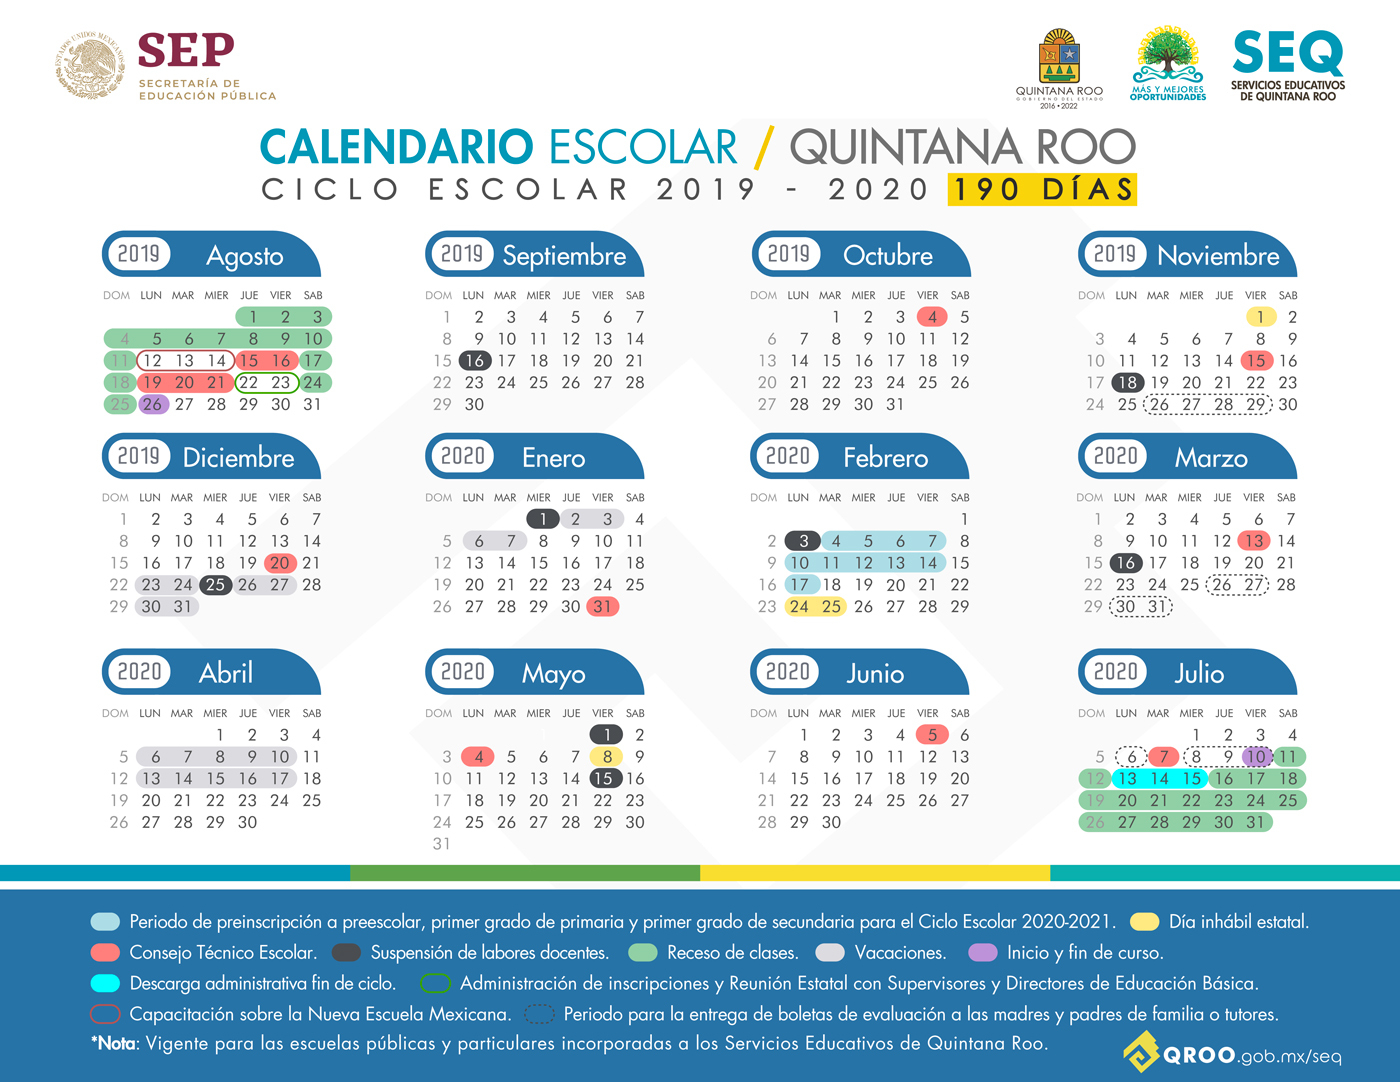 Calendario Escolar Ciclo Escolar 2019  2020 Para Escuelas inside Calendario Escolar Sep 2020 2020